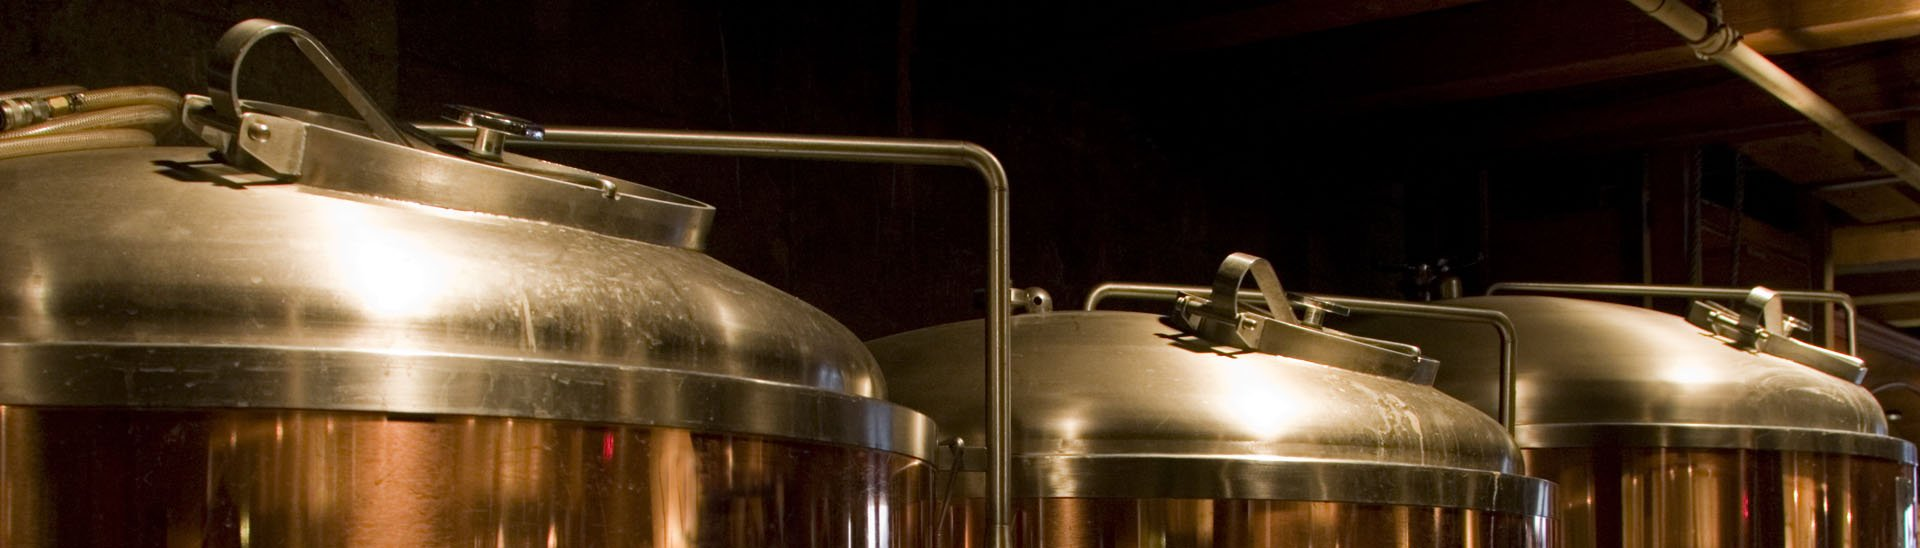 Micro Brewery Insurance